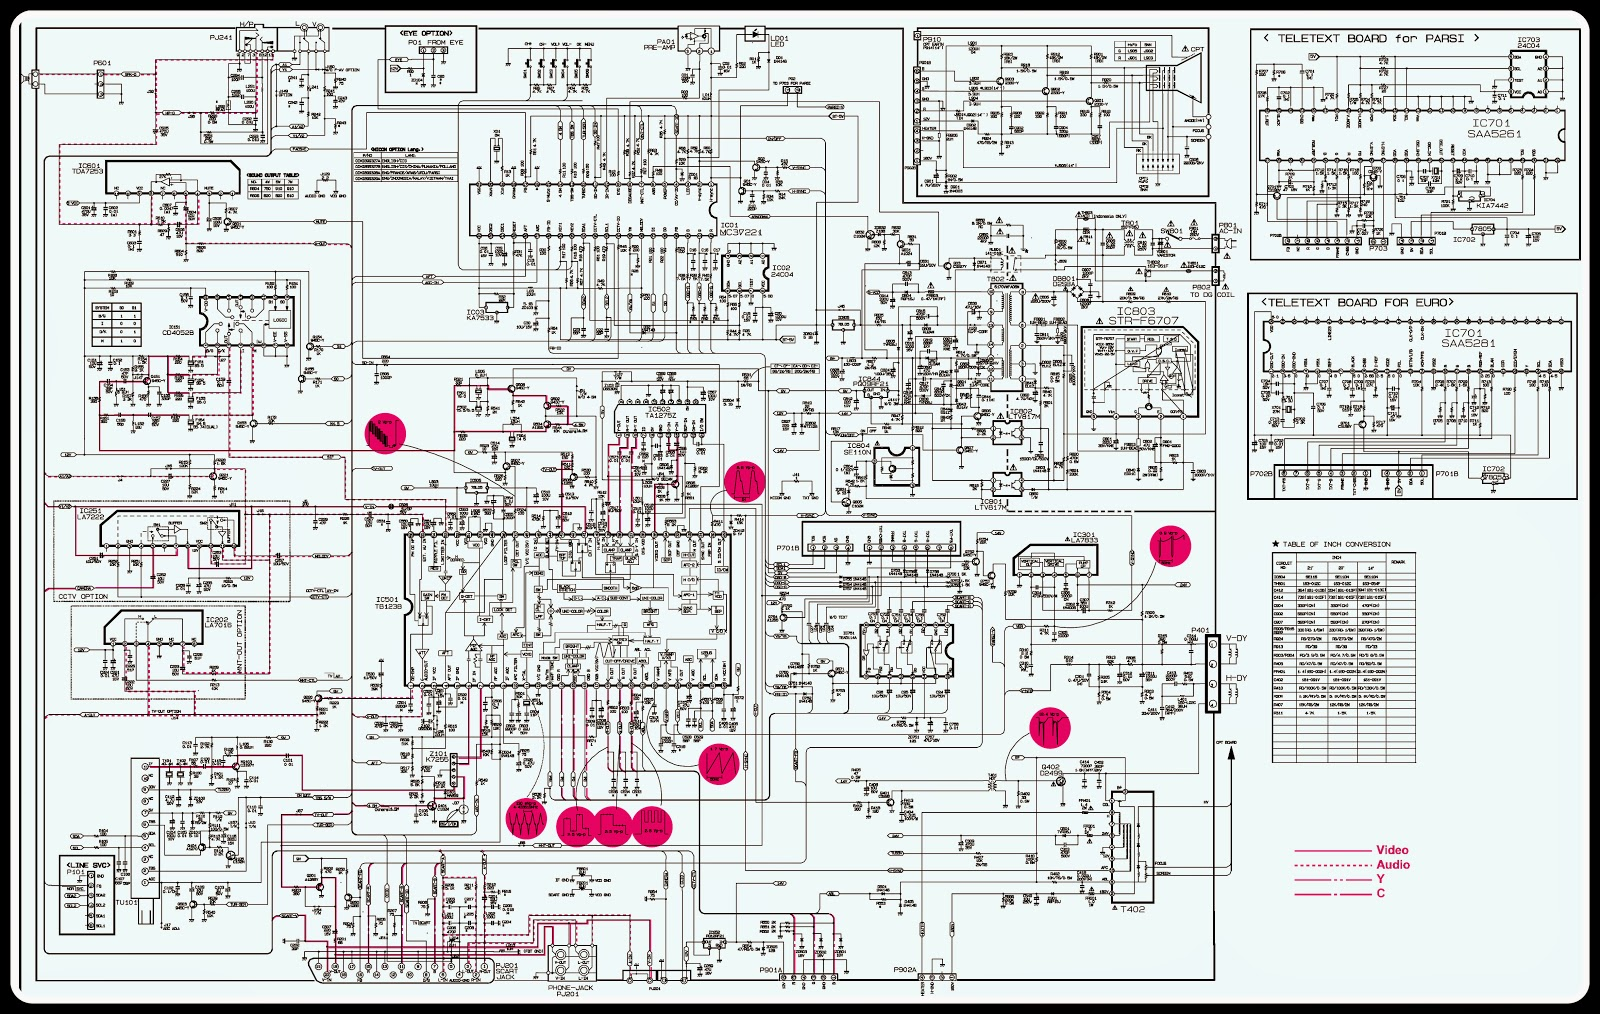 LG CF20F SCHEMATIC CIRCUIT DIAGRAM 20 inch CRT TV – Lg Wiring Diagram